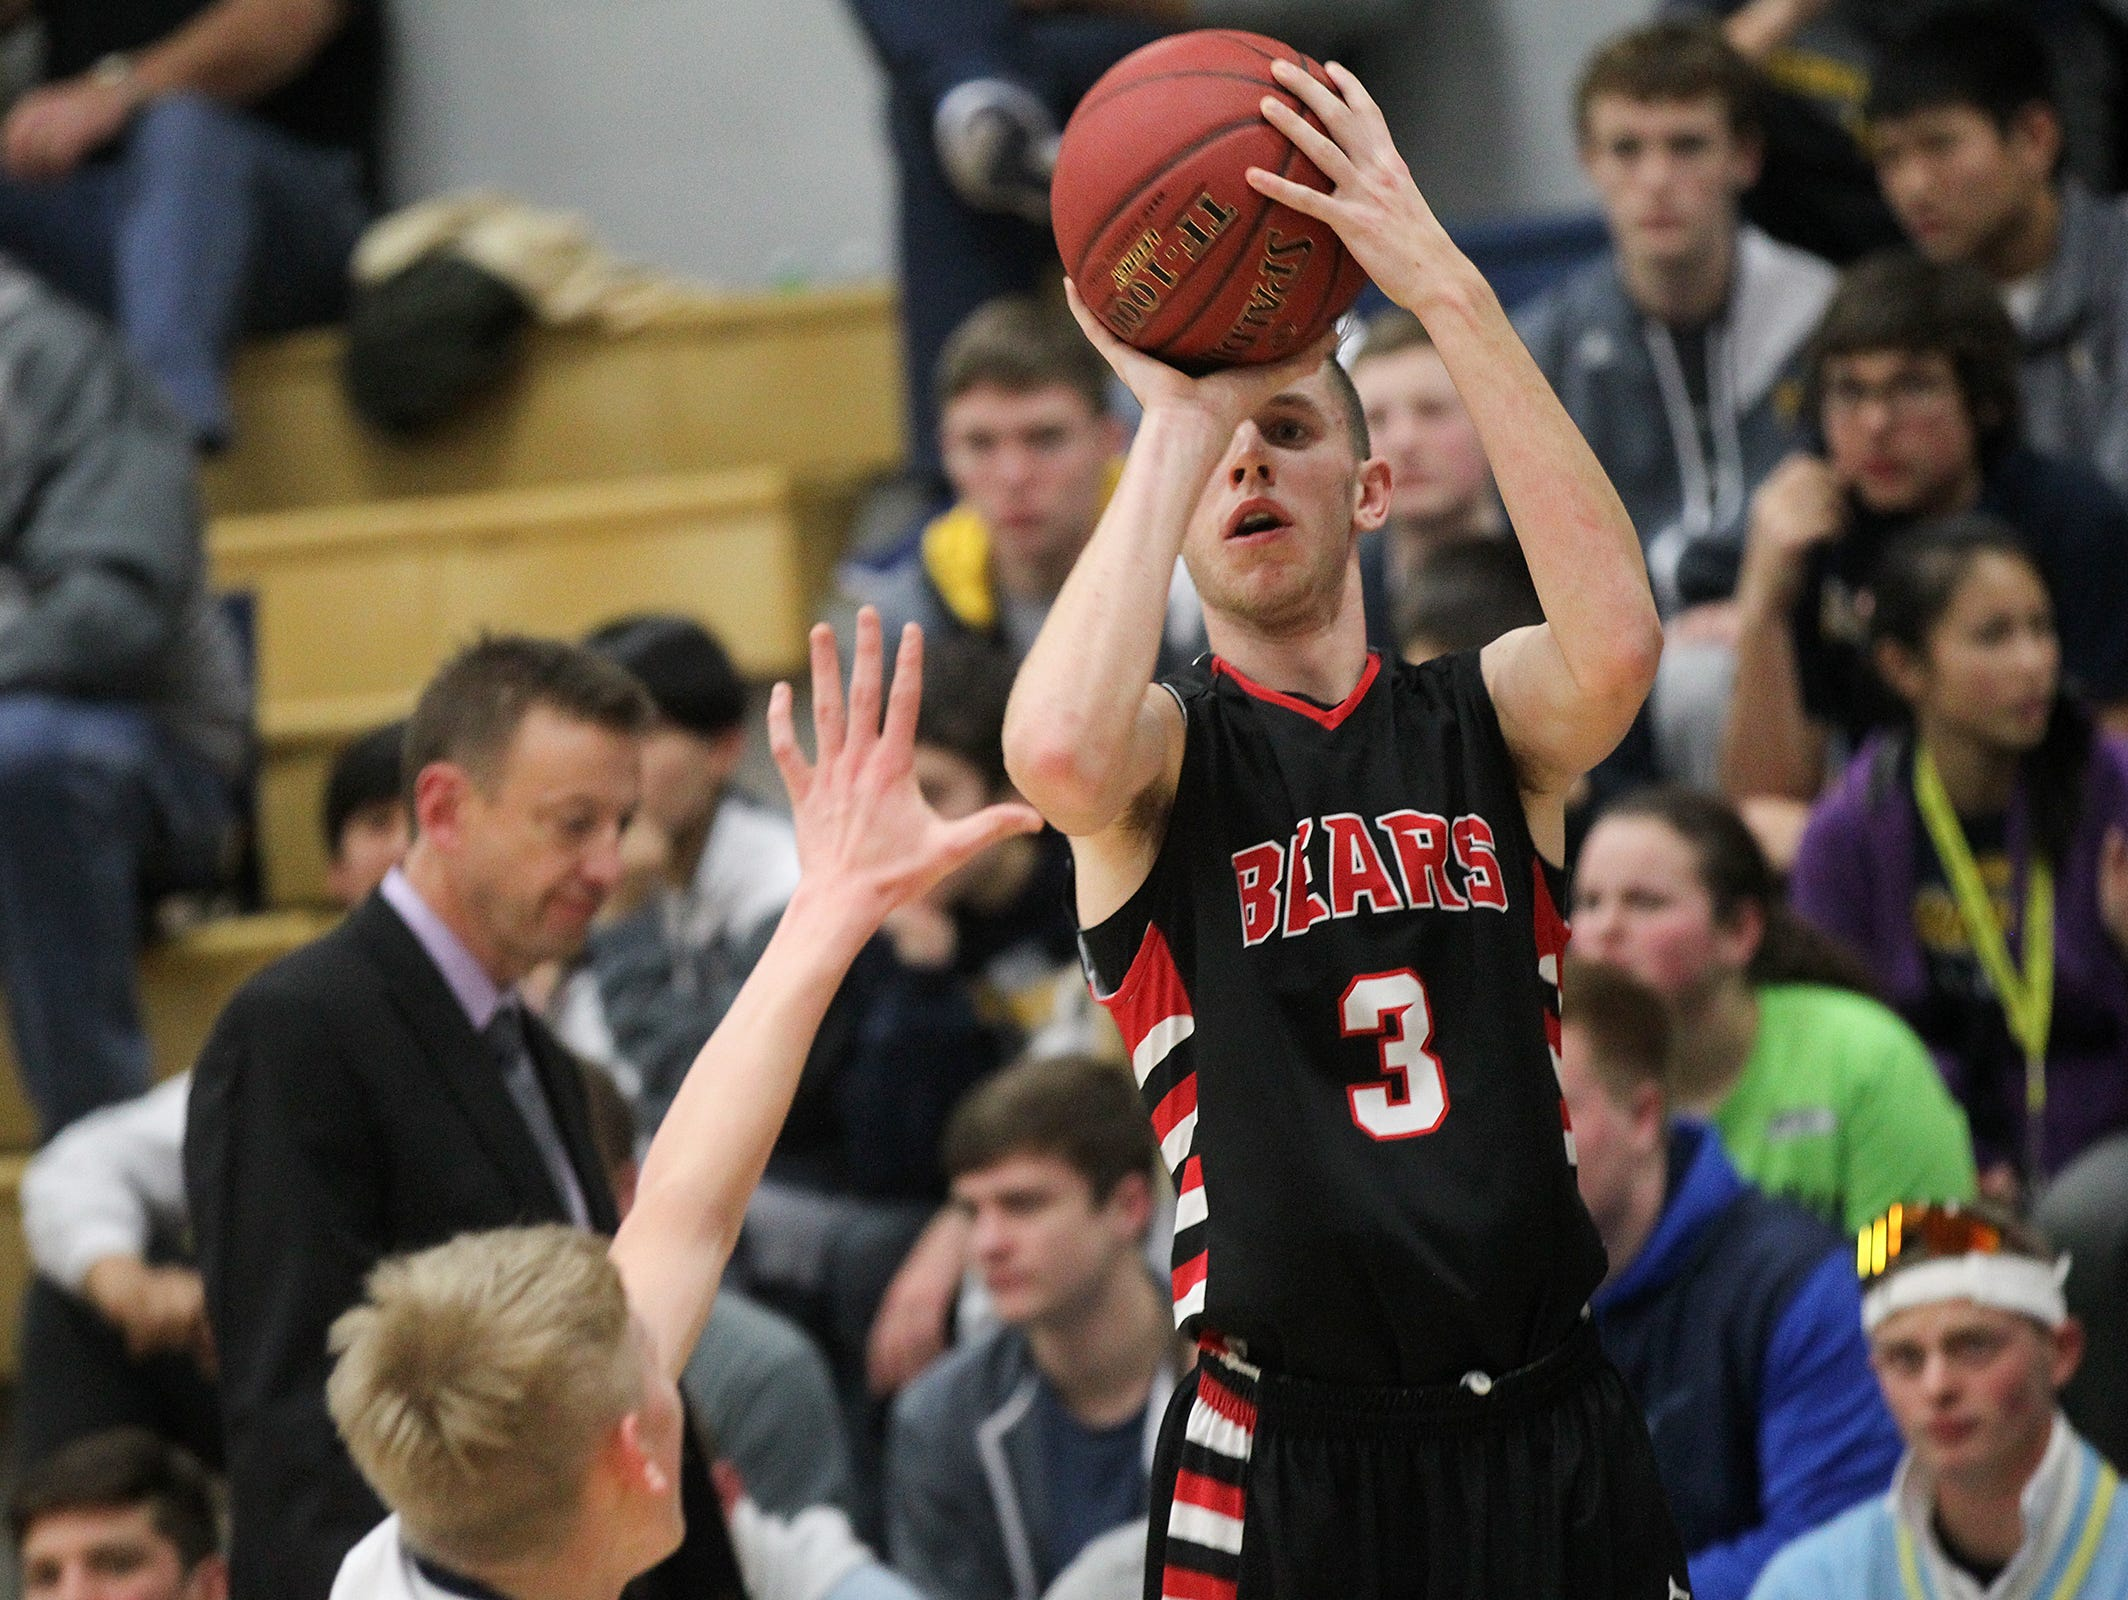 West Branch's Beau Cornwell shoots a 3-pointer during the Bears' game at Regina on Friday, Dec. 16, 2016.